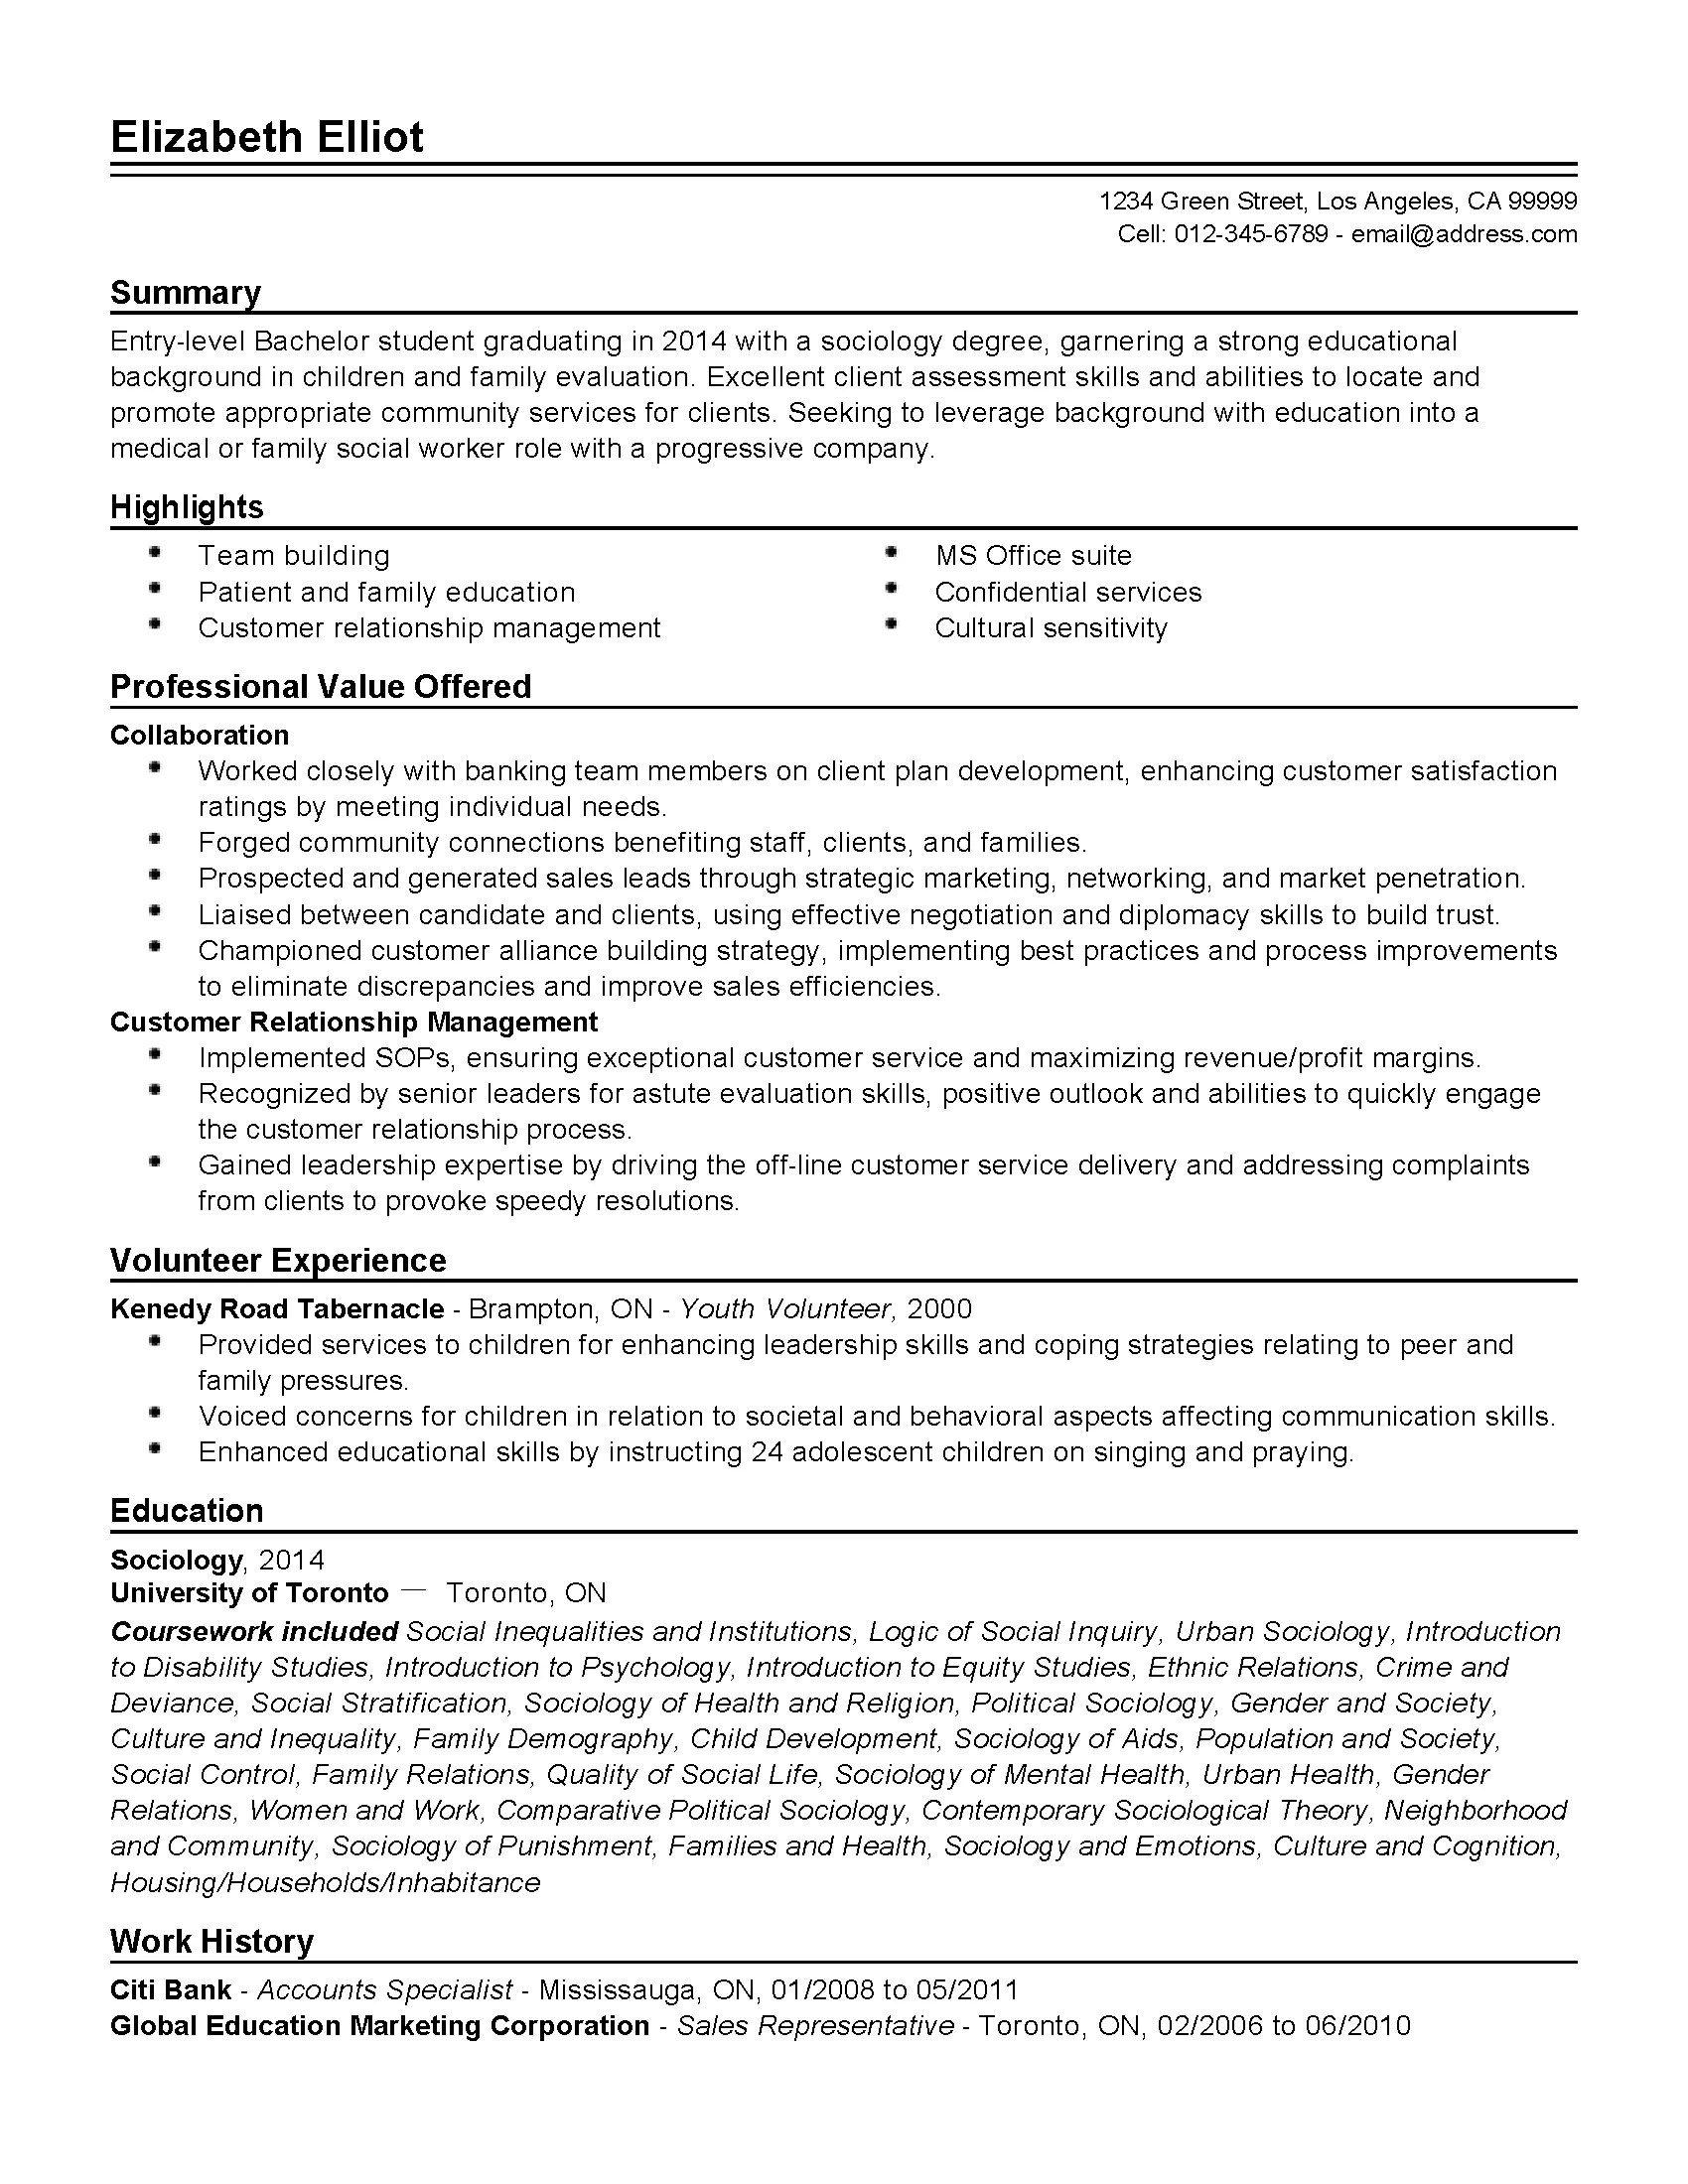 How Do You Put High School Diploma On Resume Professional Entry Level Social Worker Templates To